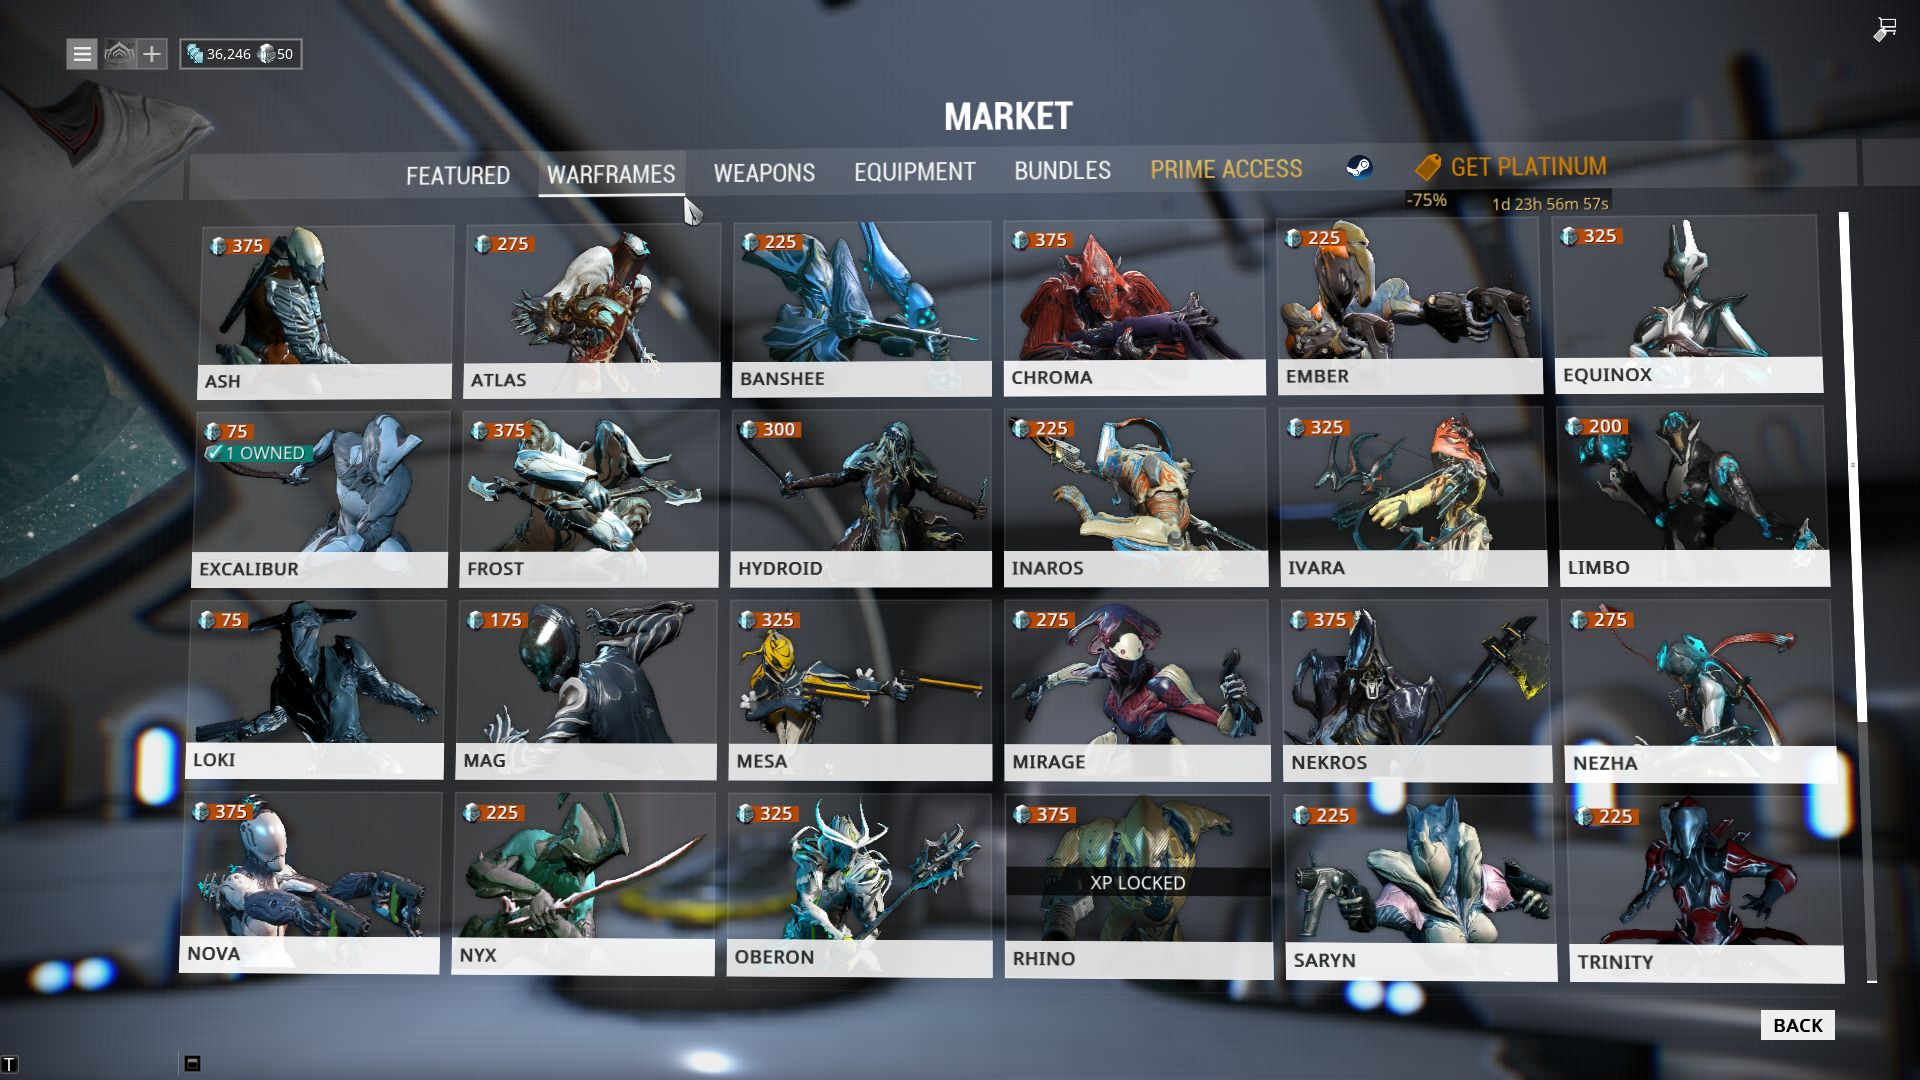 Epicnpc The Leading Warframe Market Is Place Whereplayers Can Sell And Buy Mods Trade Your Mods Keys Here Https Www Epicn Trading Online Games Warframe Mods